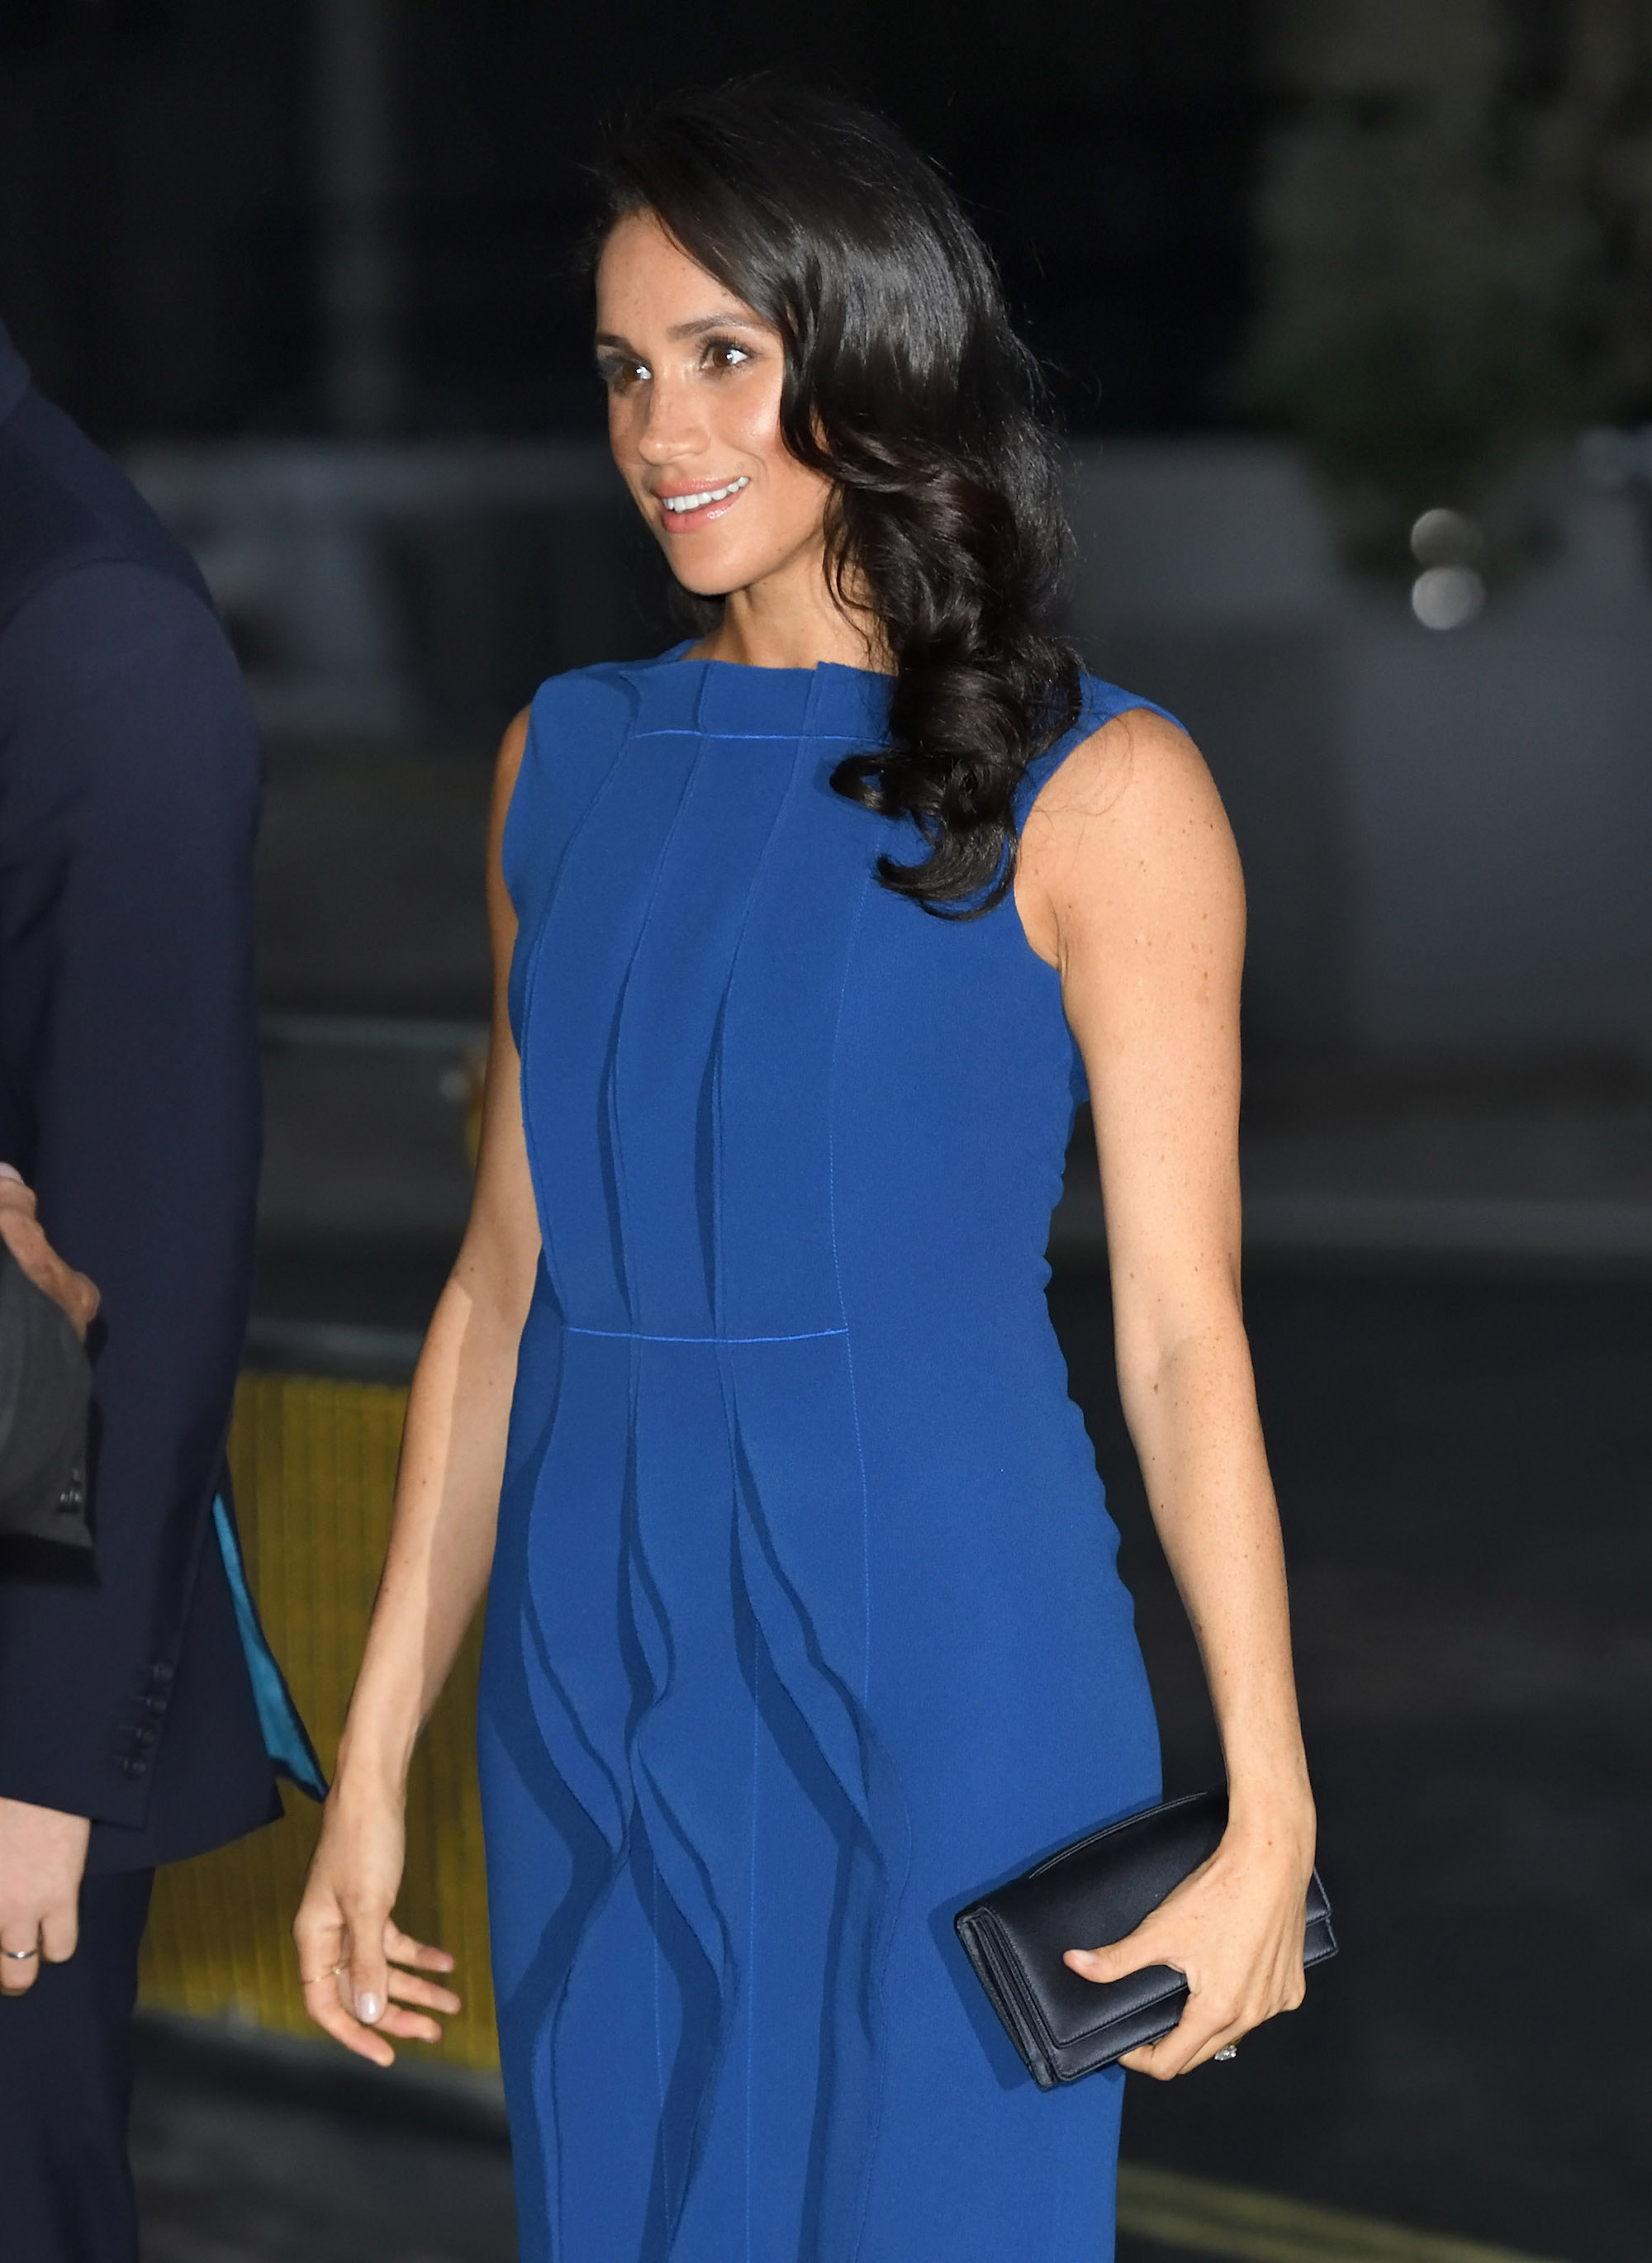 Meghan Markle in Blue Ruffled Dress